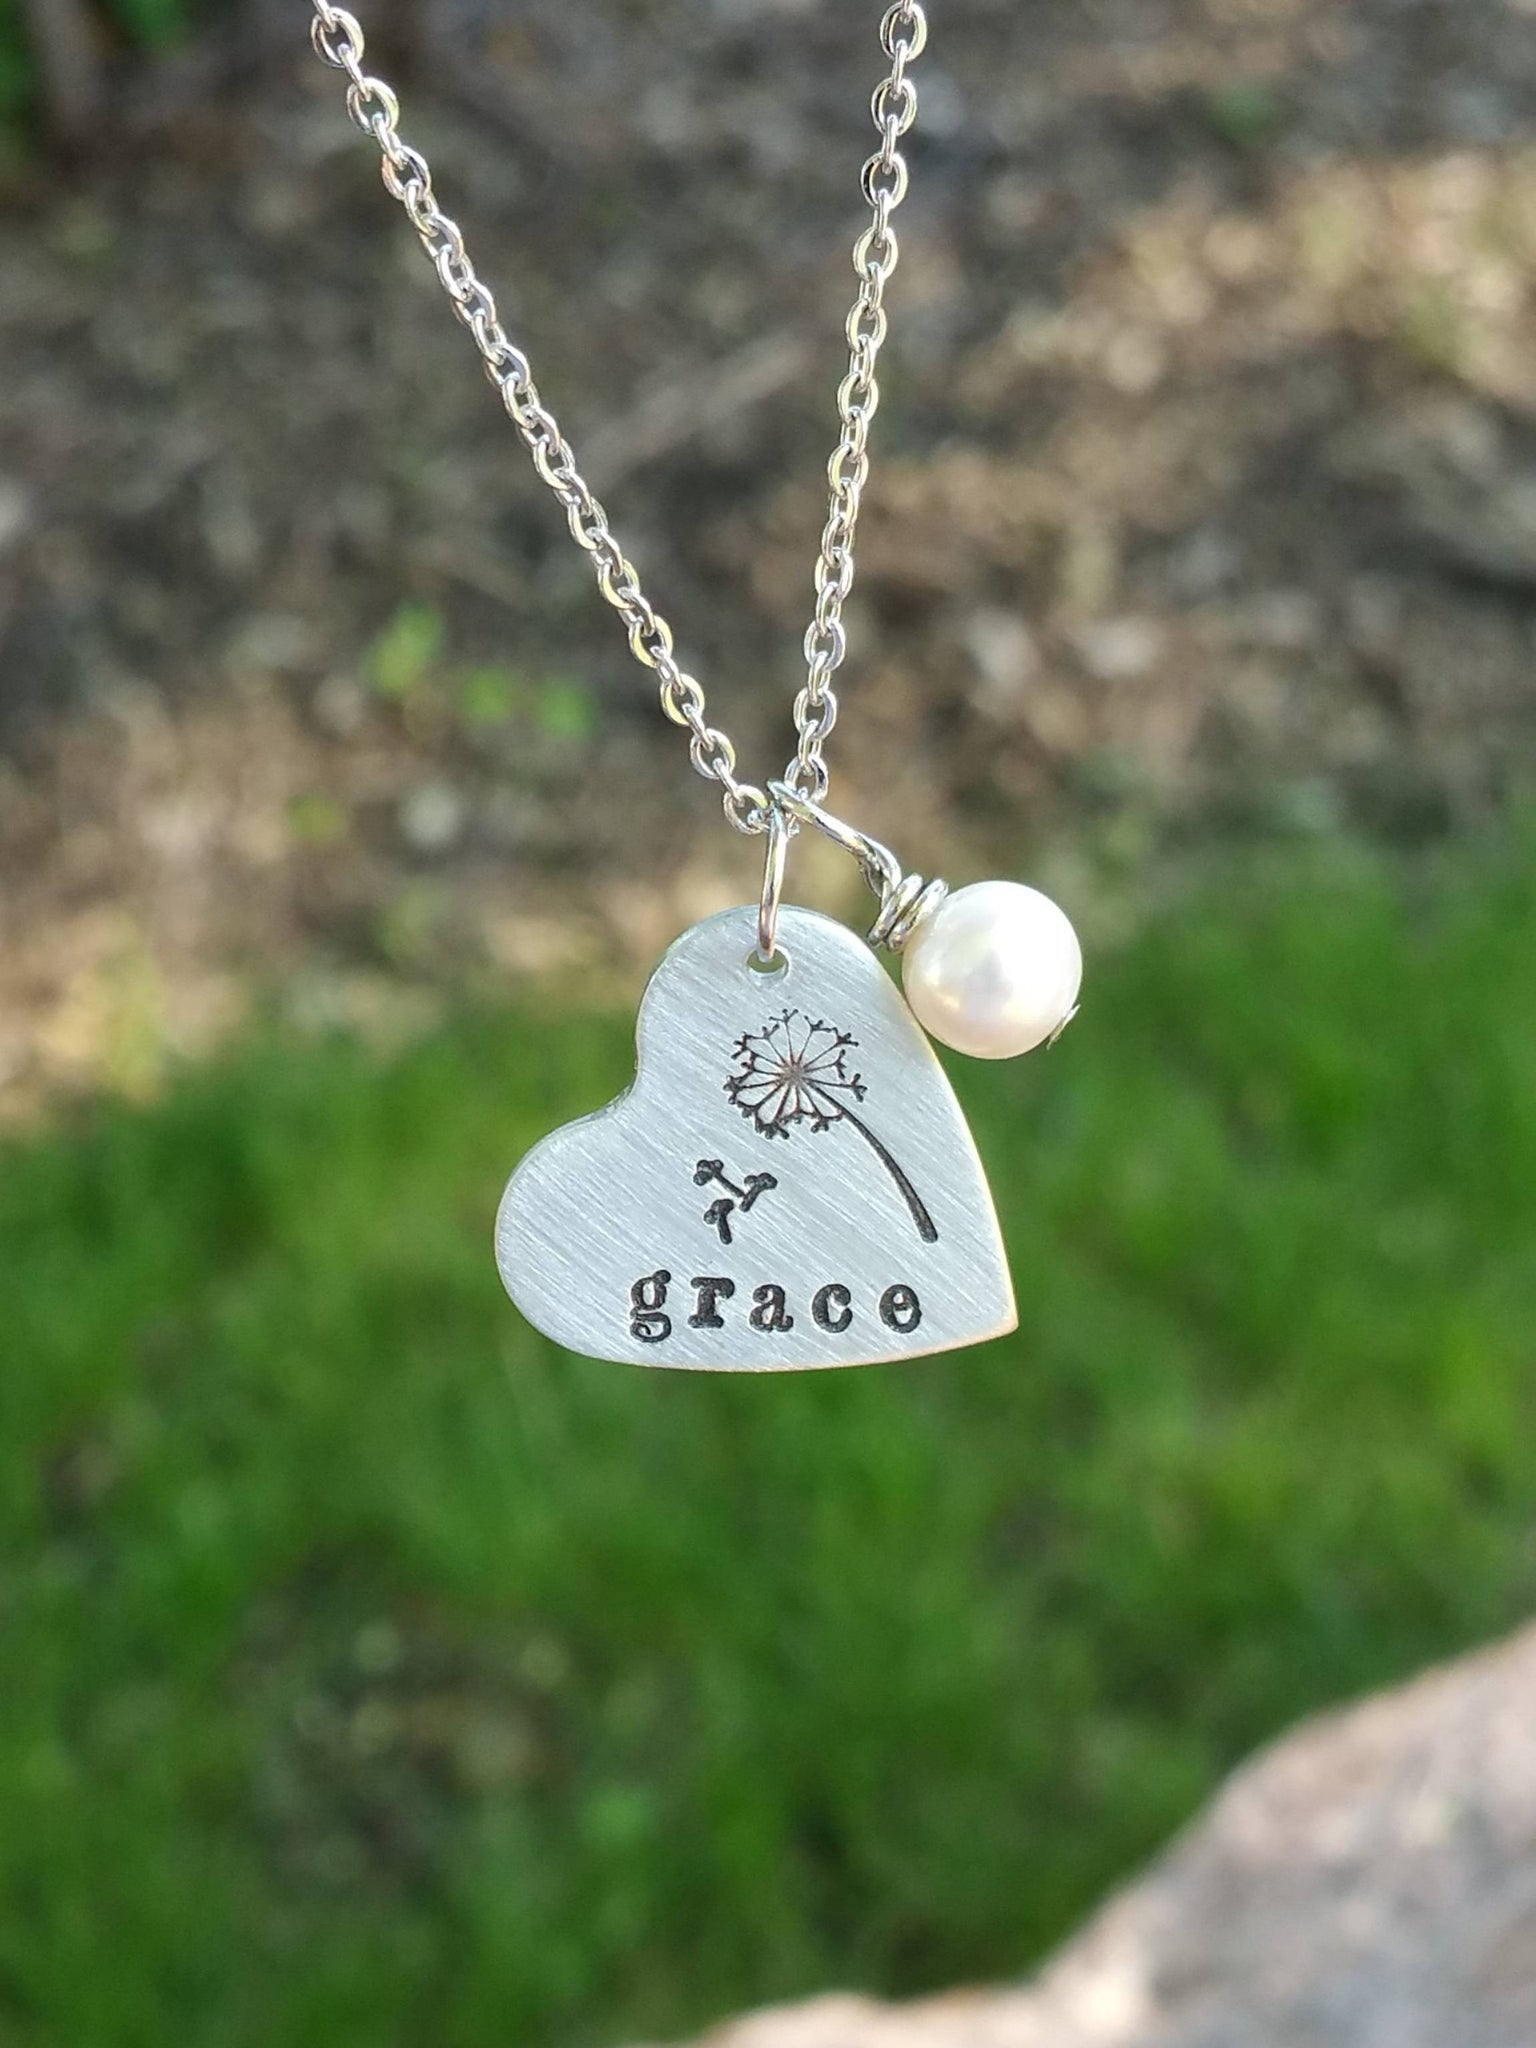 Personalized silver heart pendant with a pearl charm necklace